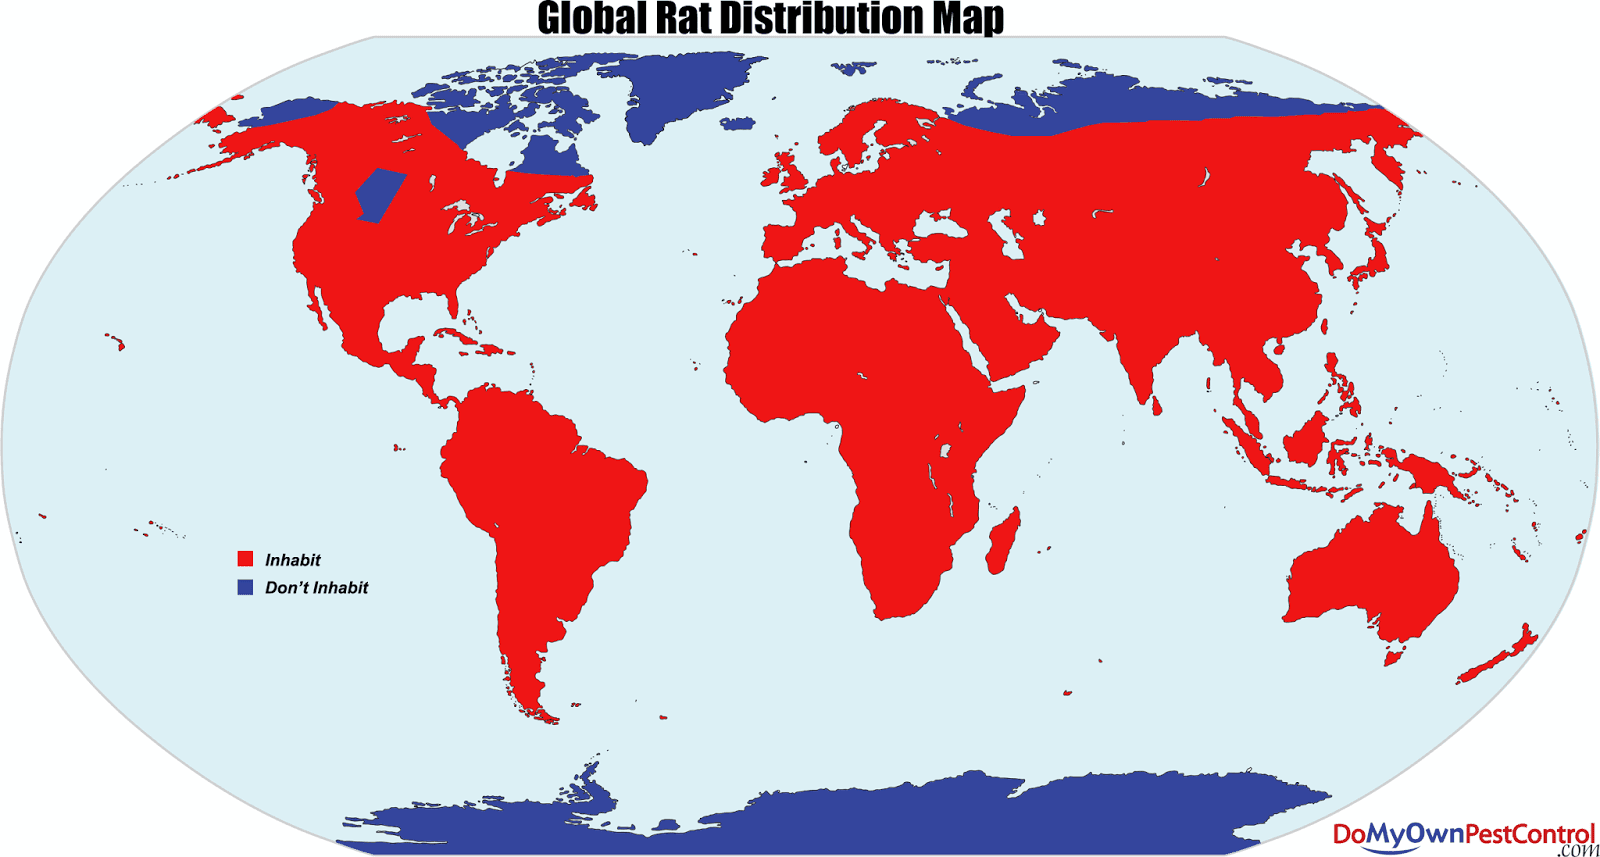 TIL there are no rats in Iceland